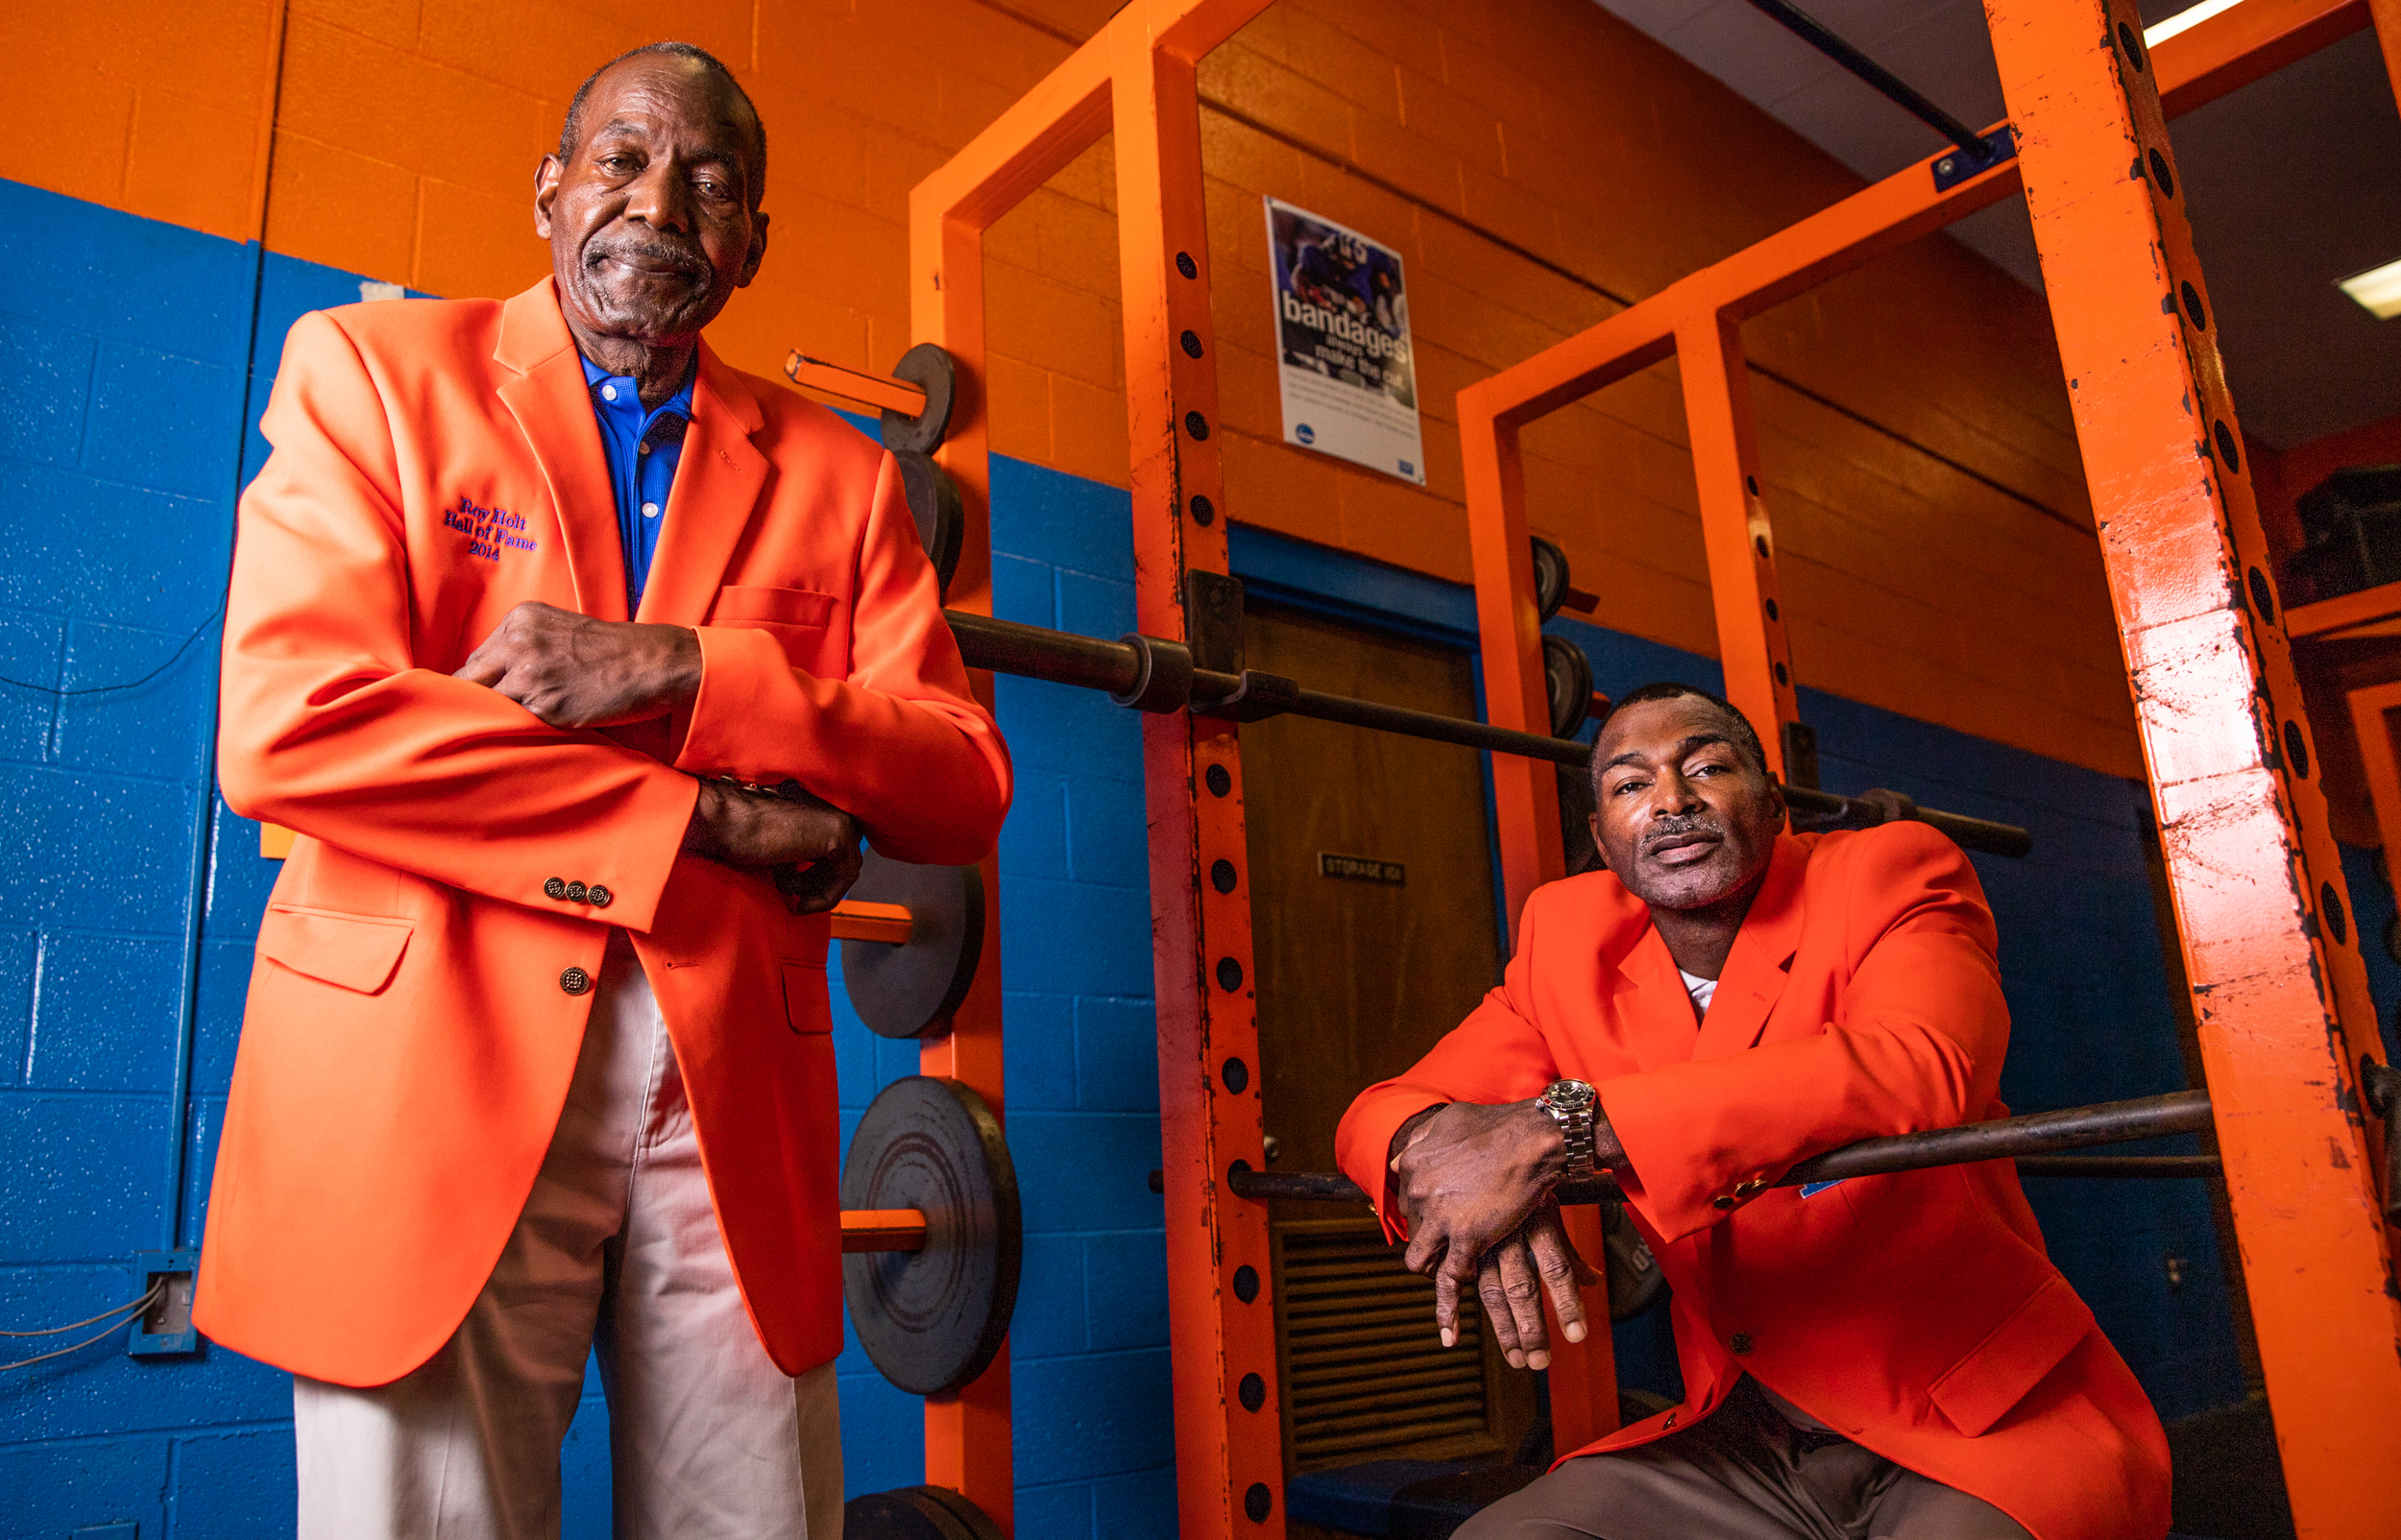 """Ron """"Tippy"""" Holt, left, and Rory Holt pose for a portrait in the men's weight room at Lexington Senior High on October 1, 2018 in Lexington, North Carolina. The Holts are the first father-son duo to be inducted into the Lexington Senior High School Sports Hall of Fame. [Dan Busey/The Dispatch]"""